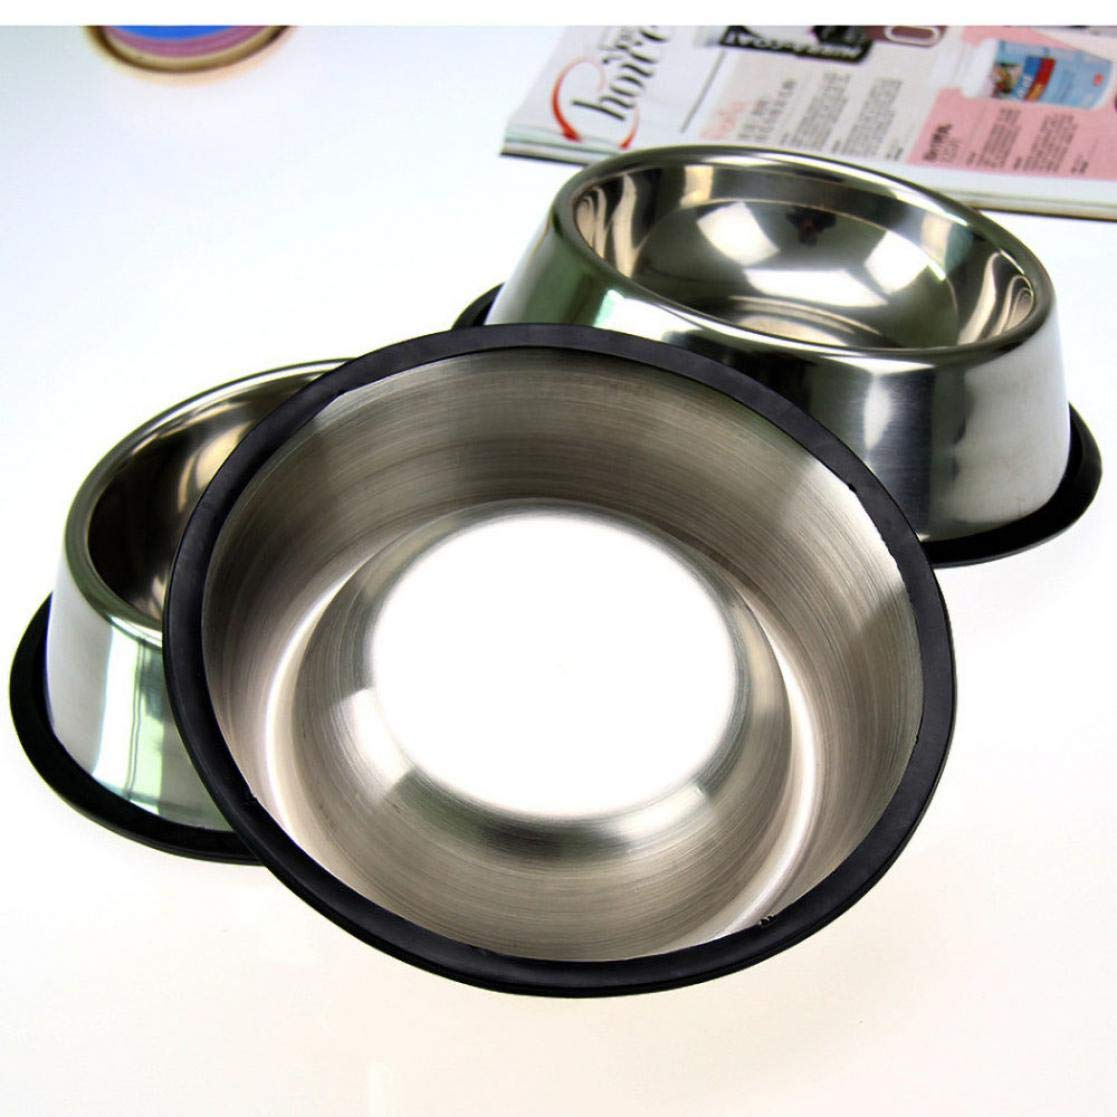 Achang Cute Stainless Steel Cat Dog Foods Bowl Stylish Pet Bowl For Pet Supplies (3 Pieces)